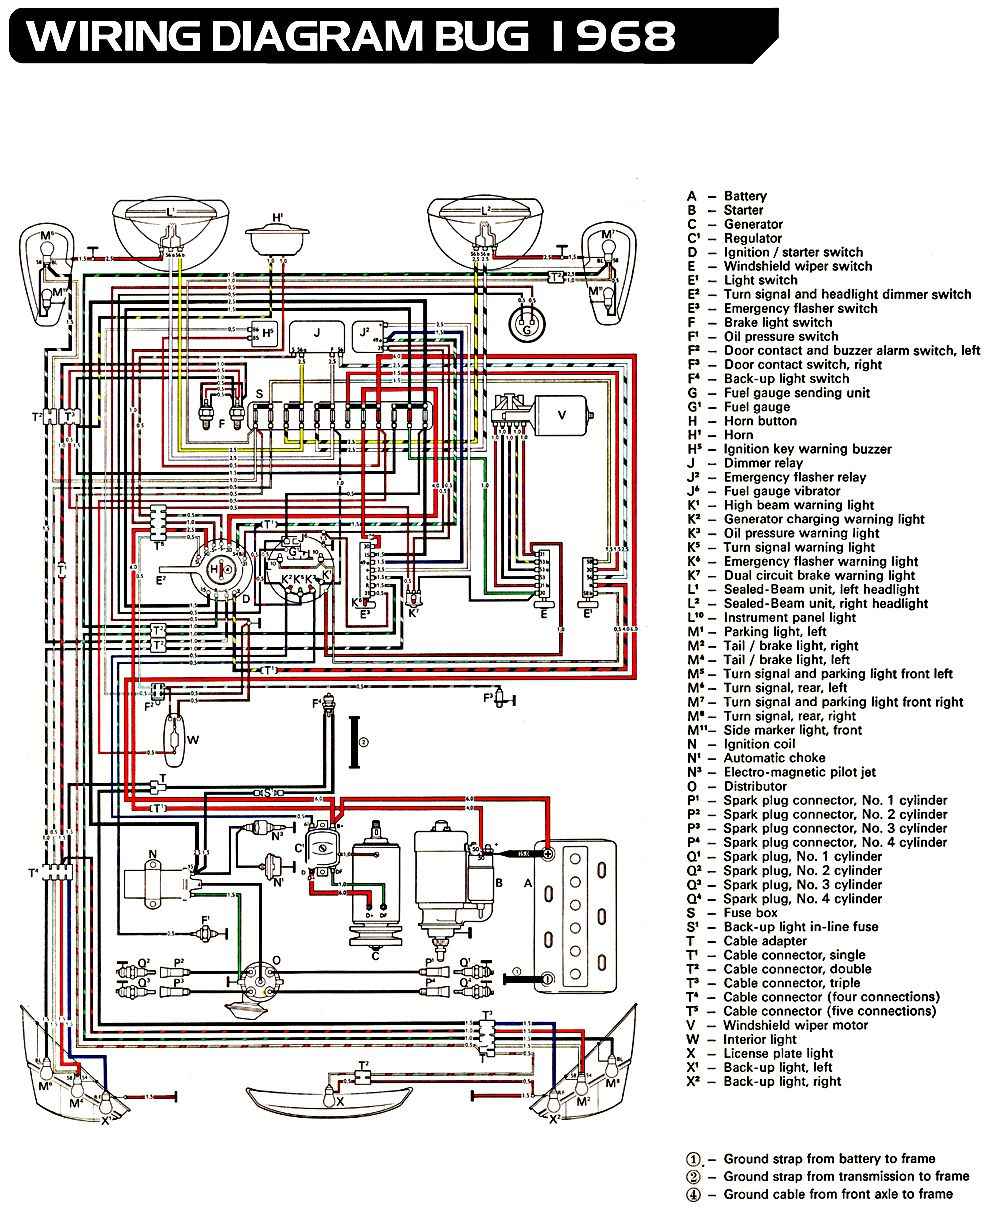 3a1908112d3826270ed5e3be362292bf vw bug ignition wiring diagram 73 vw wiring diagram free vw wiring diagrams at couponss.co